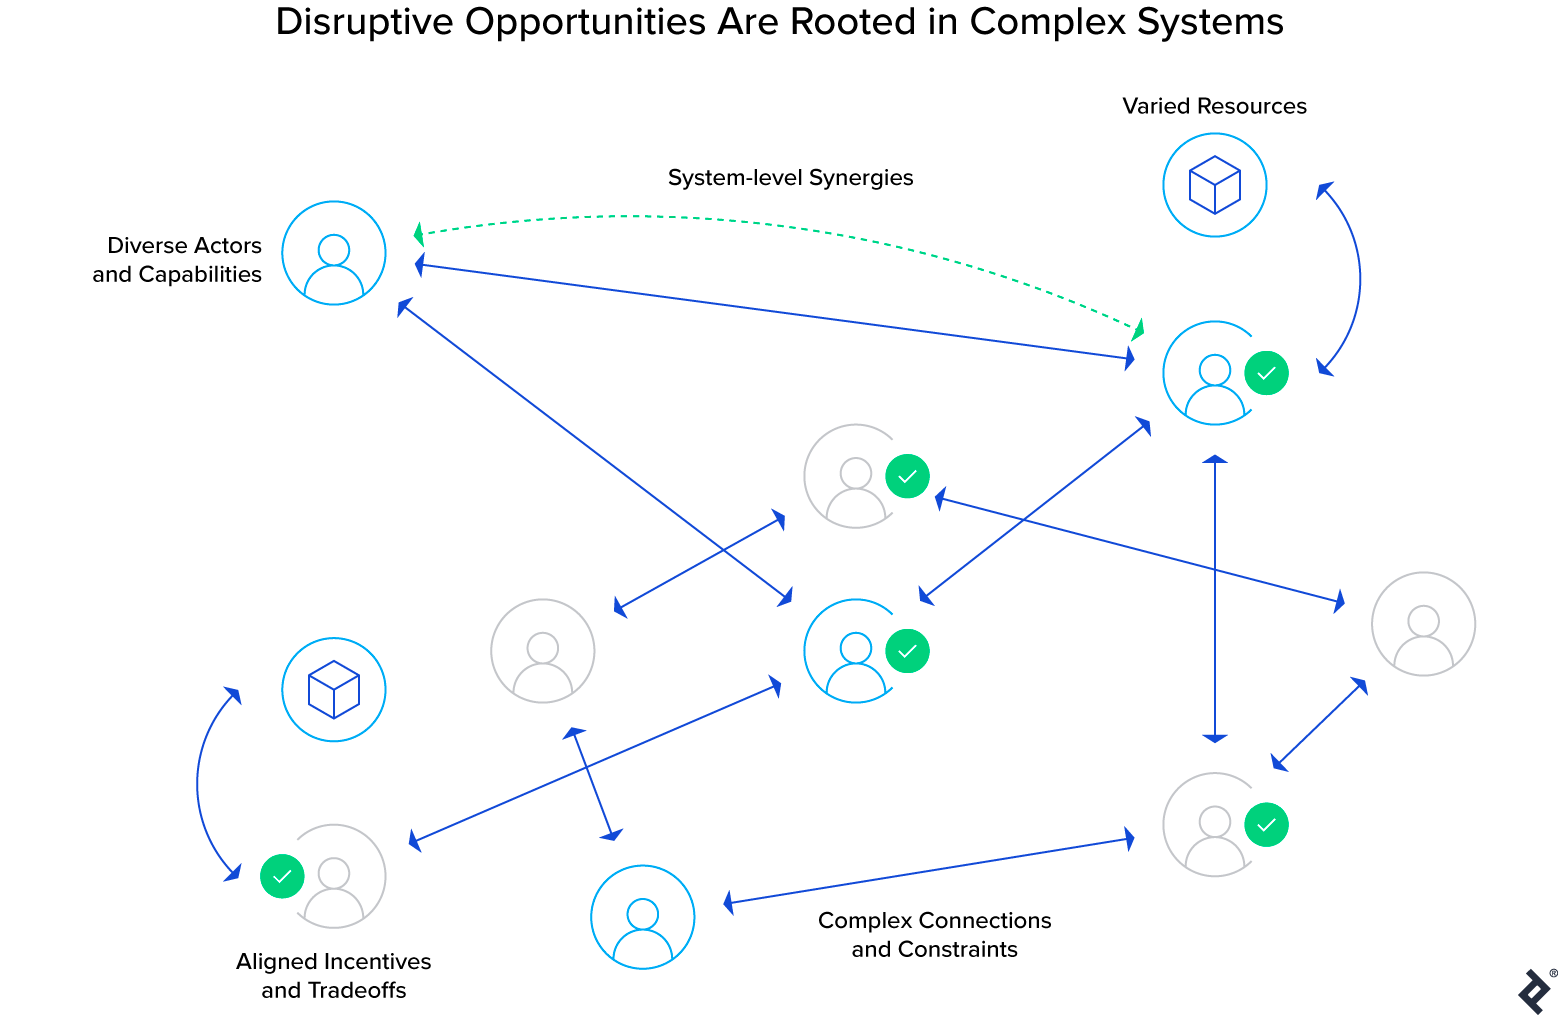 The complex nature of disruptive opportunities